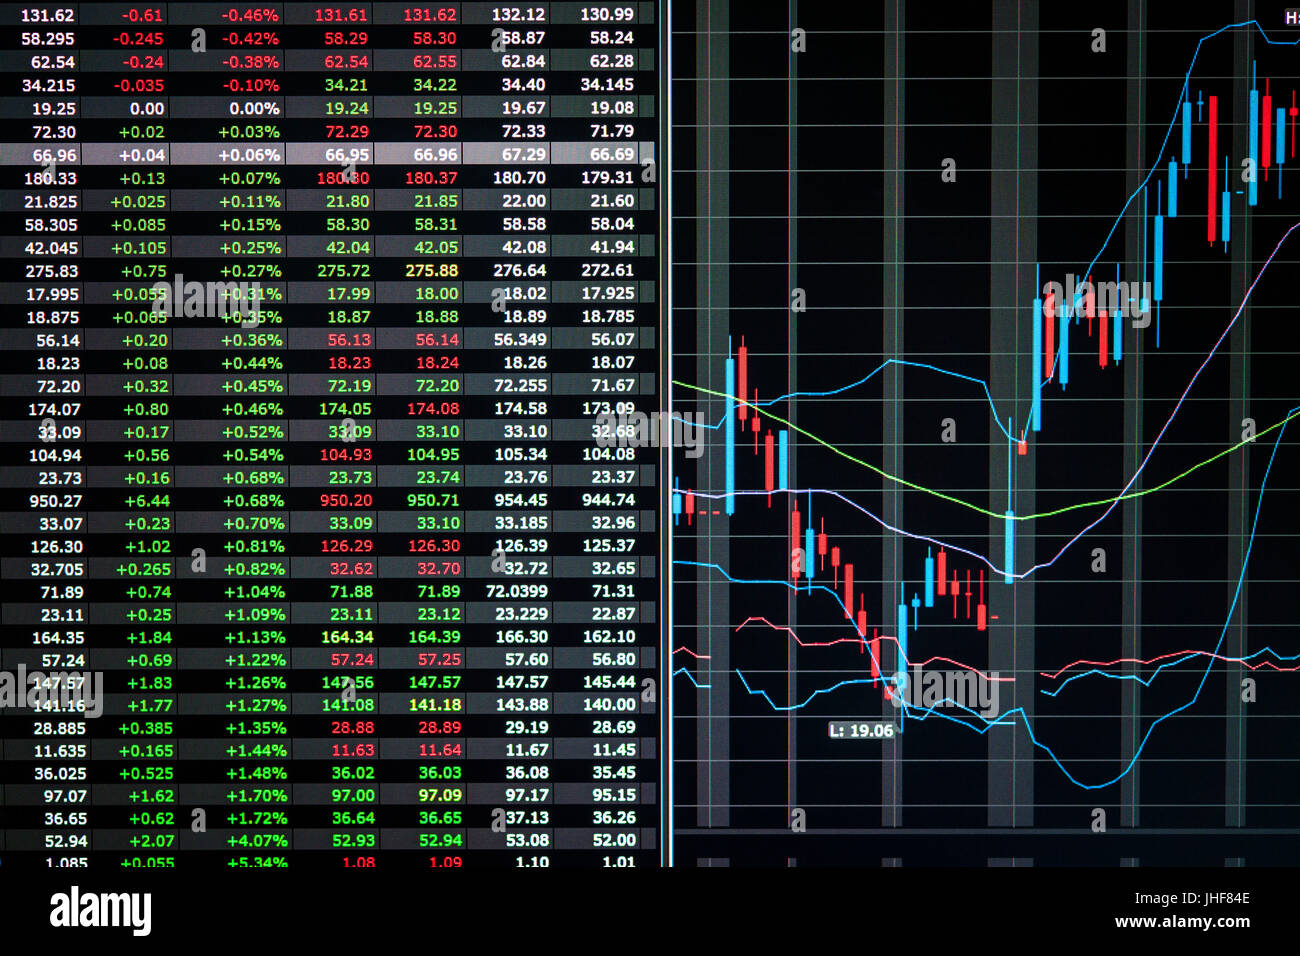 Stock market charts and numbers displayed on trading screen of online investing platform - Stock Image